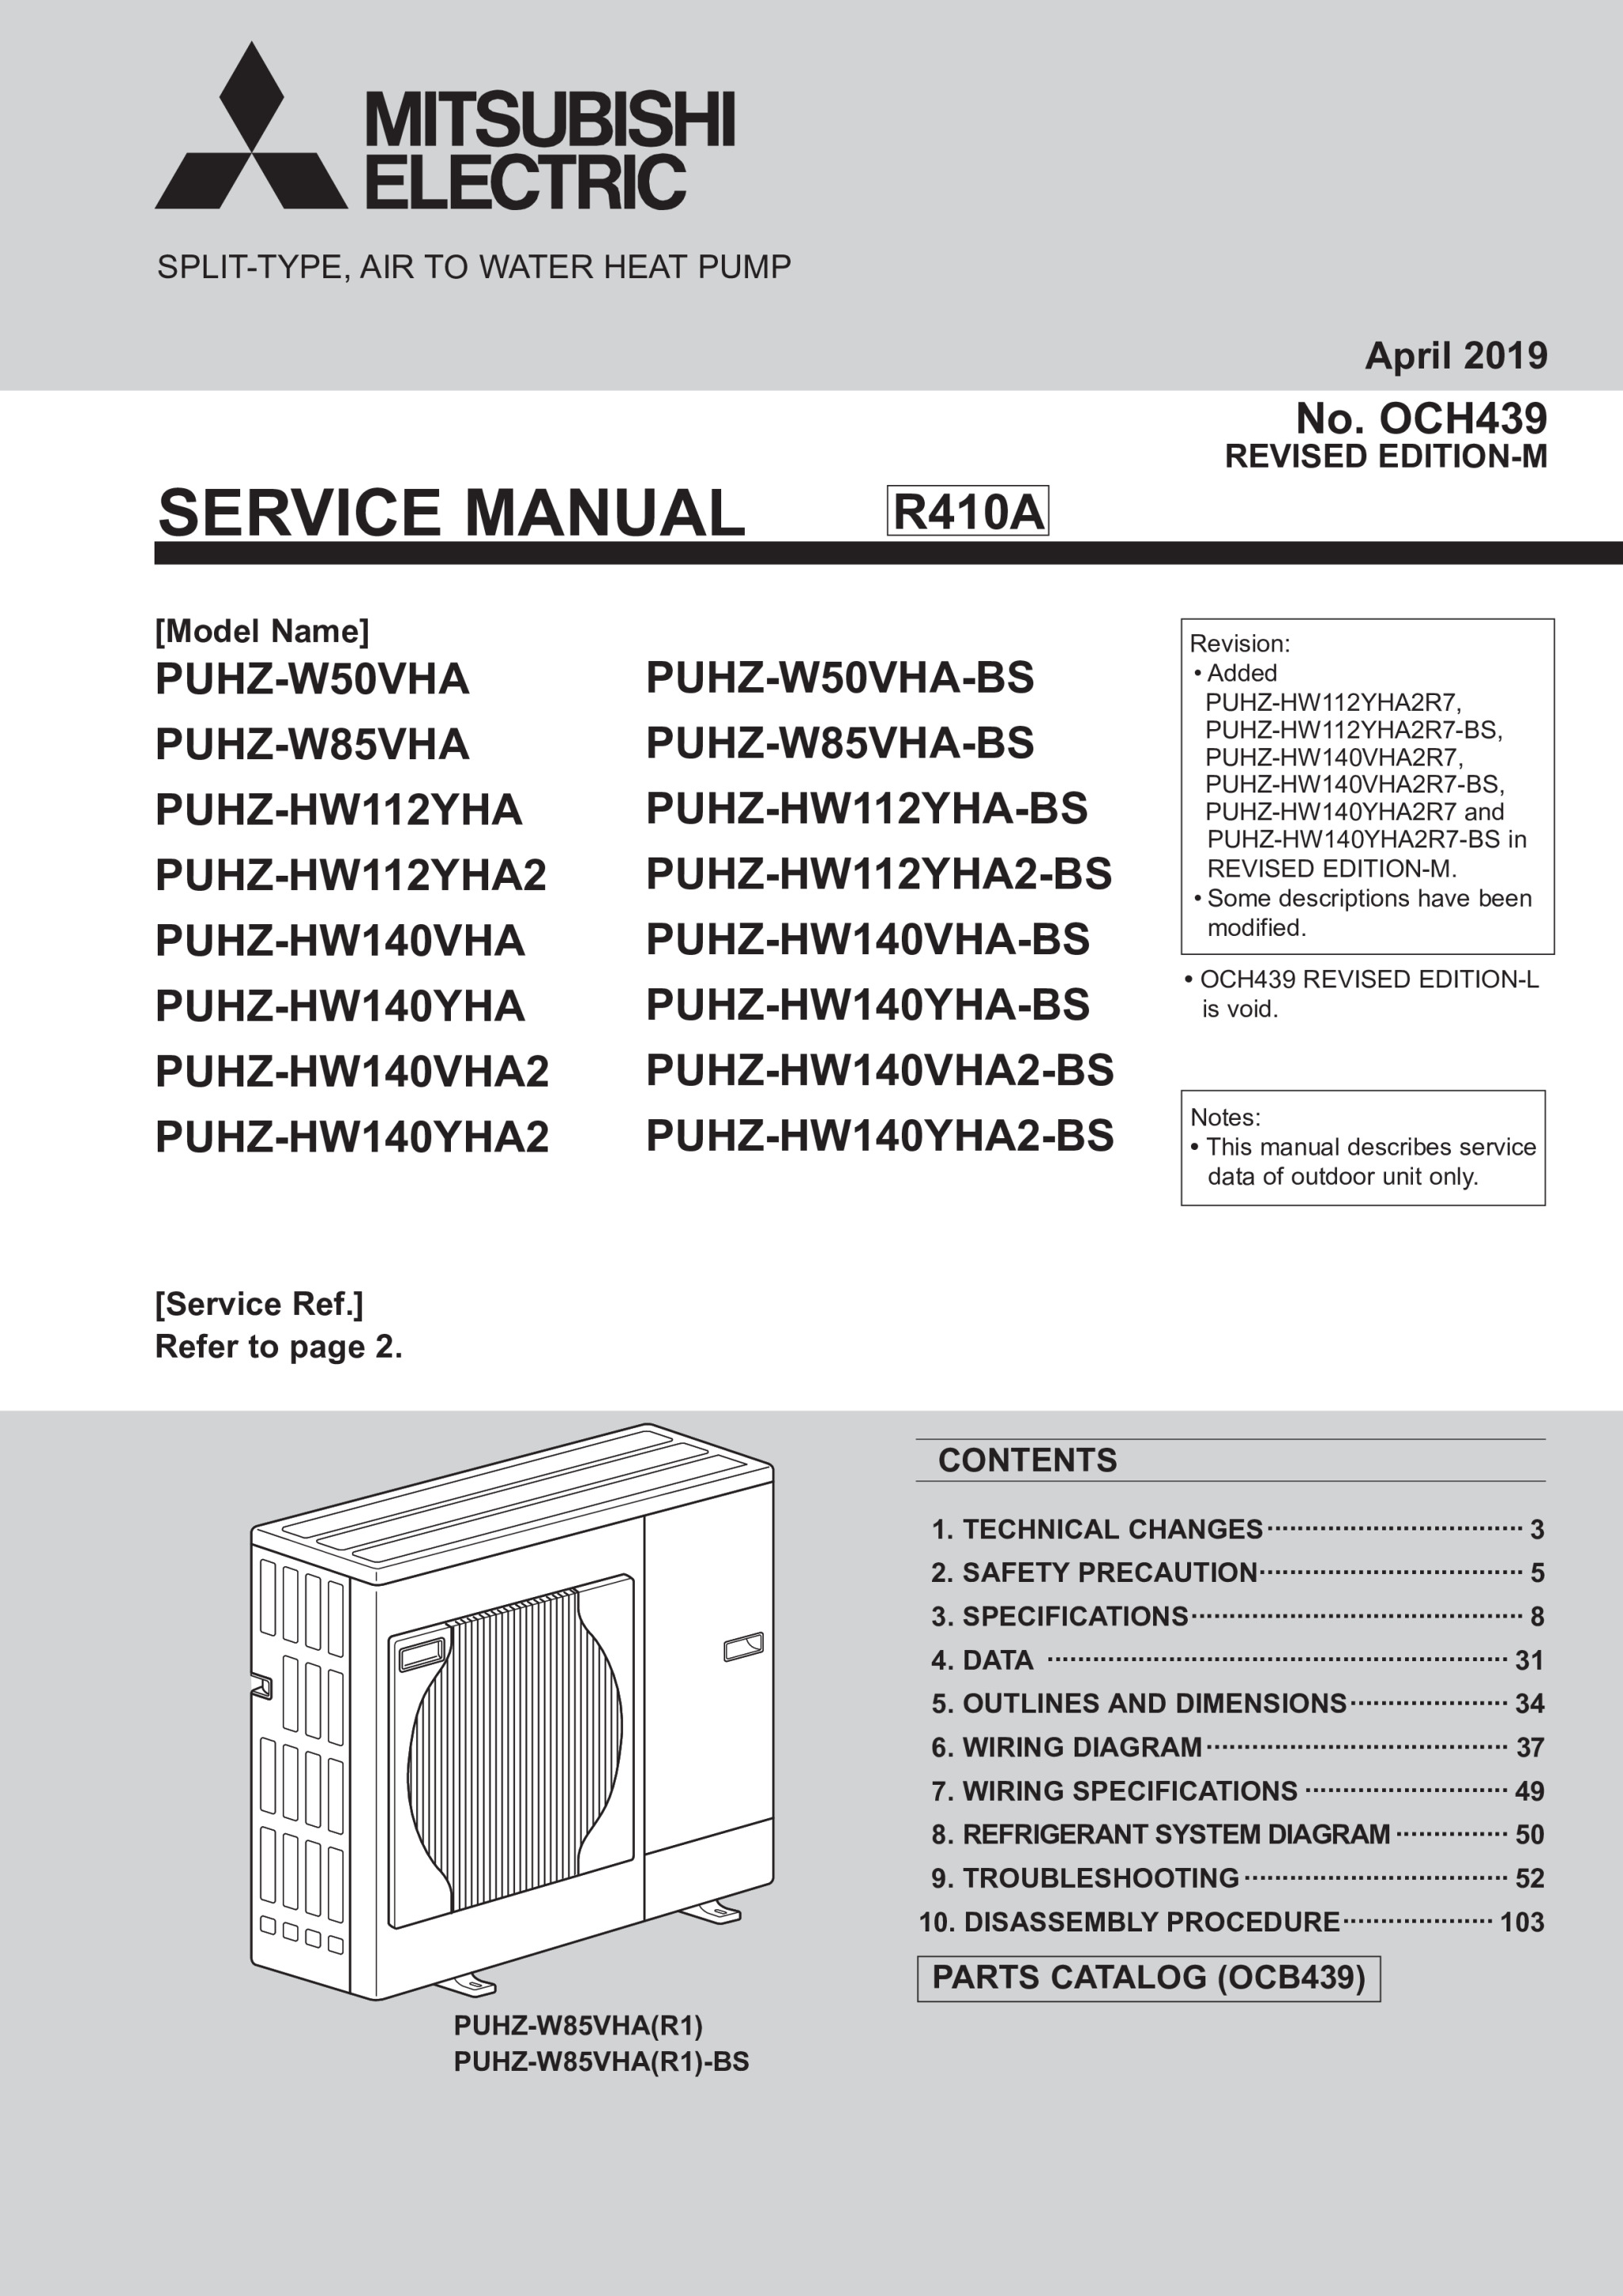 ecodan puhz hw140vha2 bs puhz hw140yha2 bs service manual och439k rh library mitsubishielectric co uk Mitsubishi Montero Engine Manual Mitsubishi Eclipse Manual